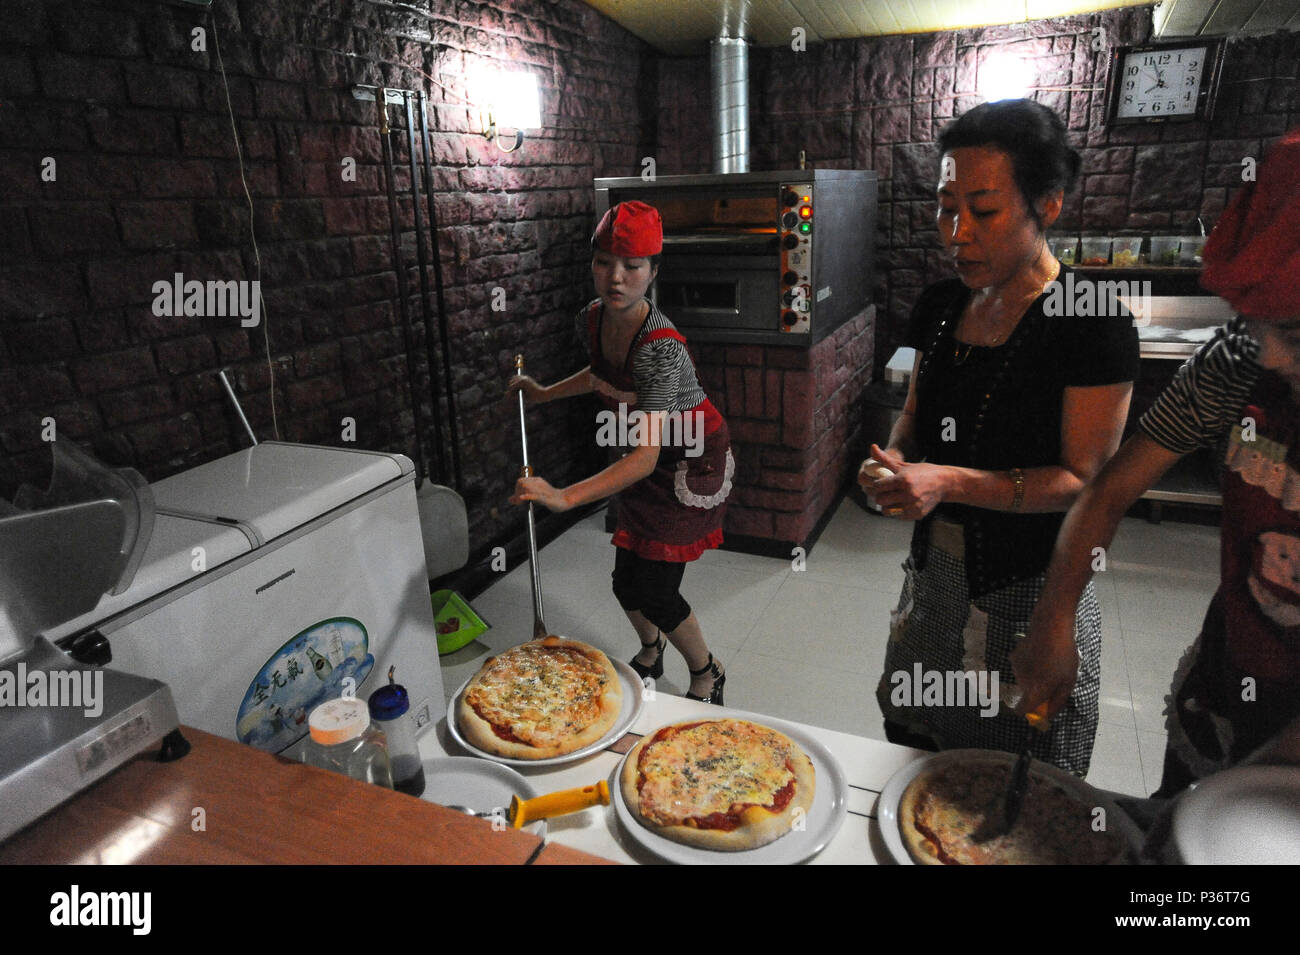 Pjoengjang, North Korea, co-workers in the kitchen of a pizzeria - Stock Image